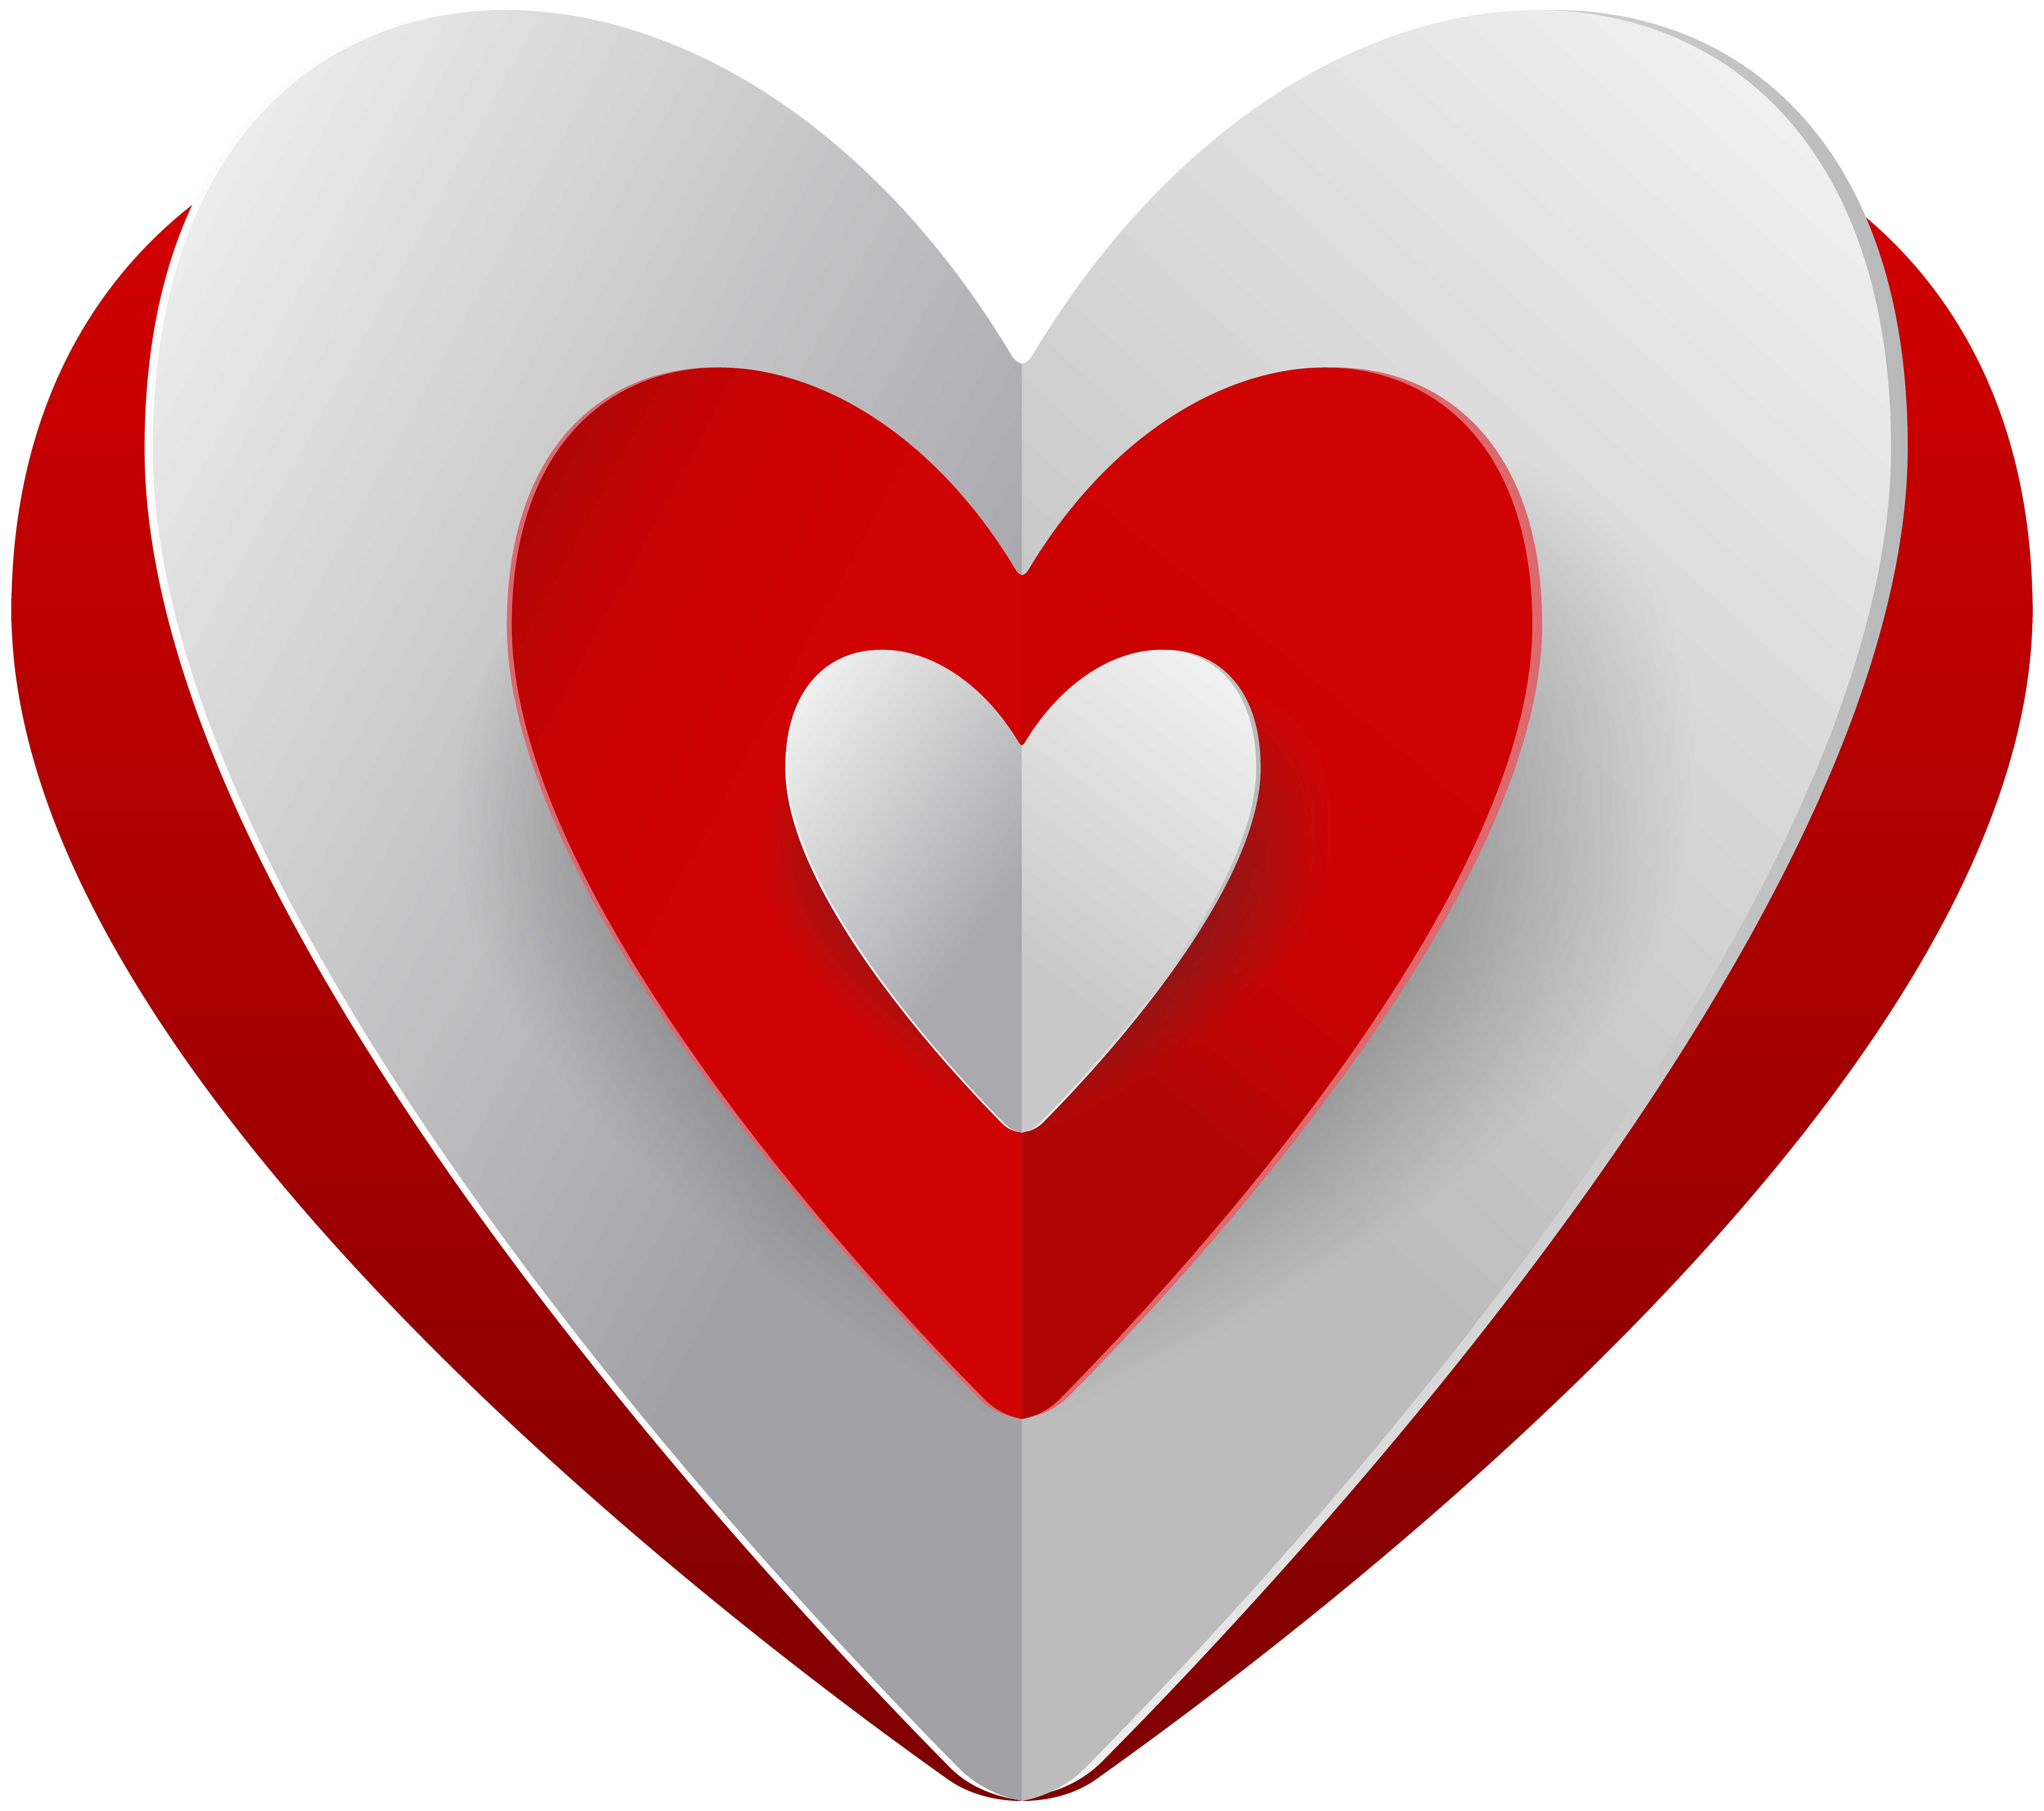 Red heart clip art. White hearts png